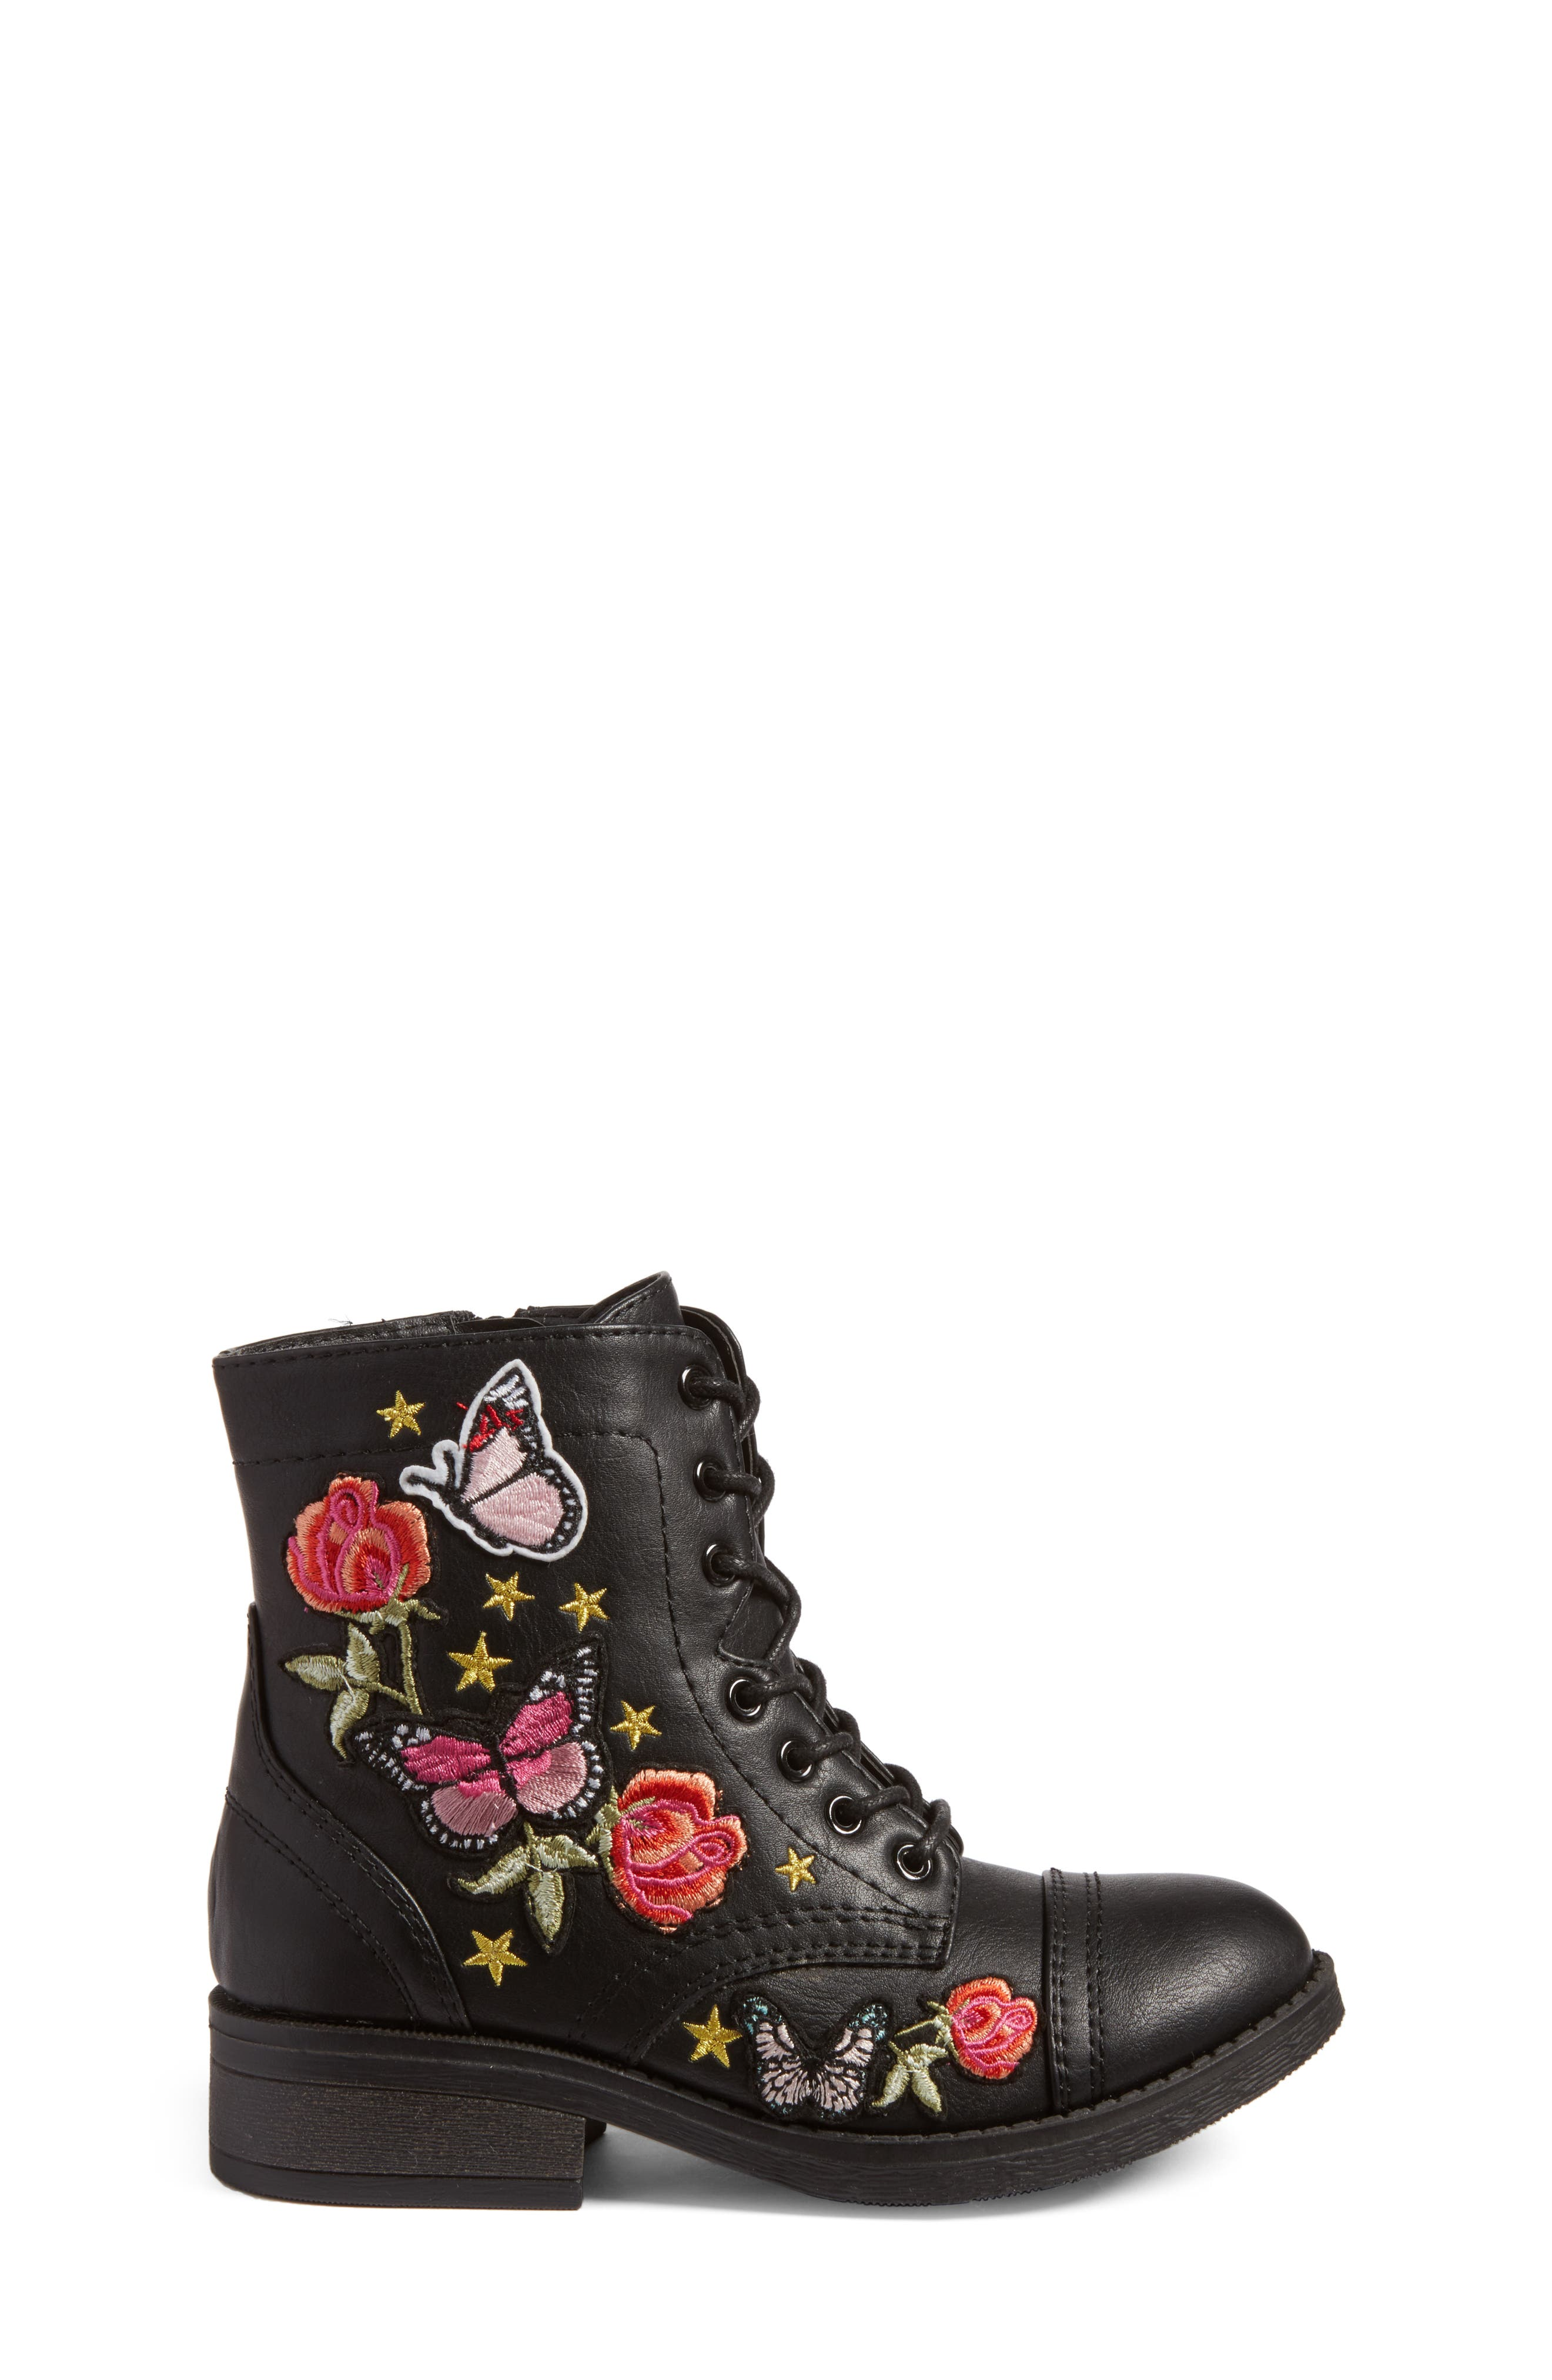 Roaring Embroidered Combat Boot,                             Alternate thumbnail 3, color,                             Black Faux Leather